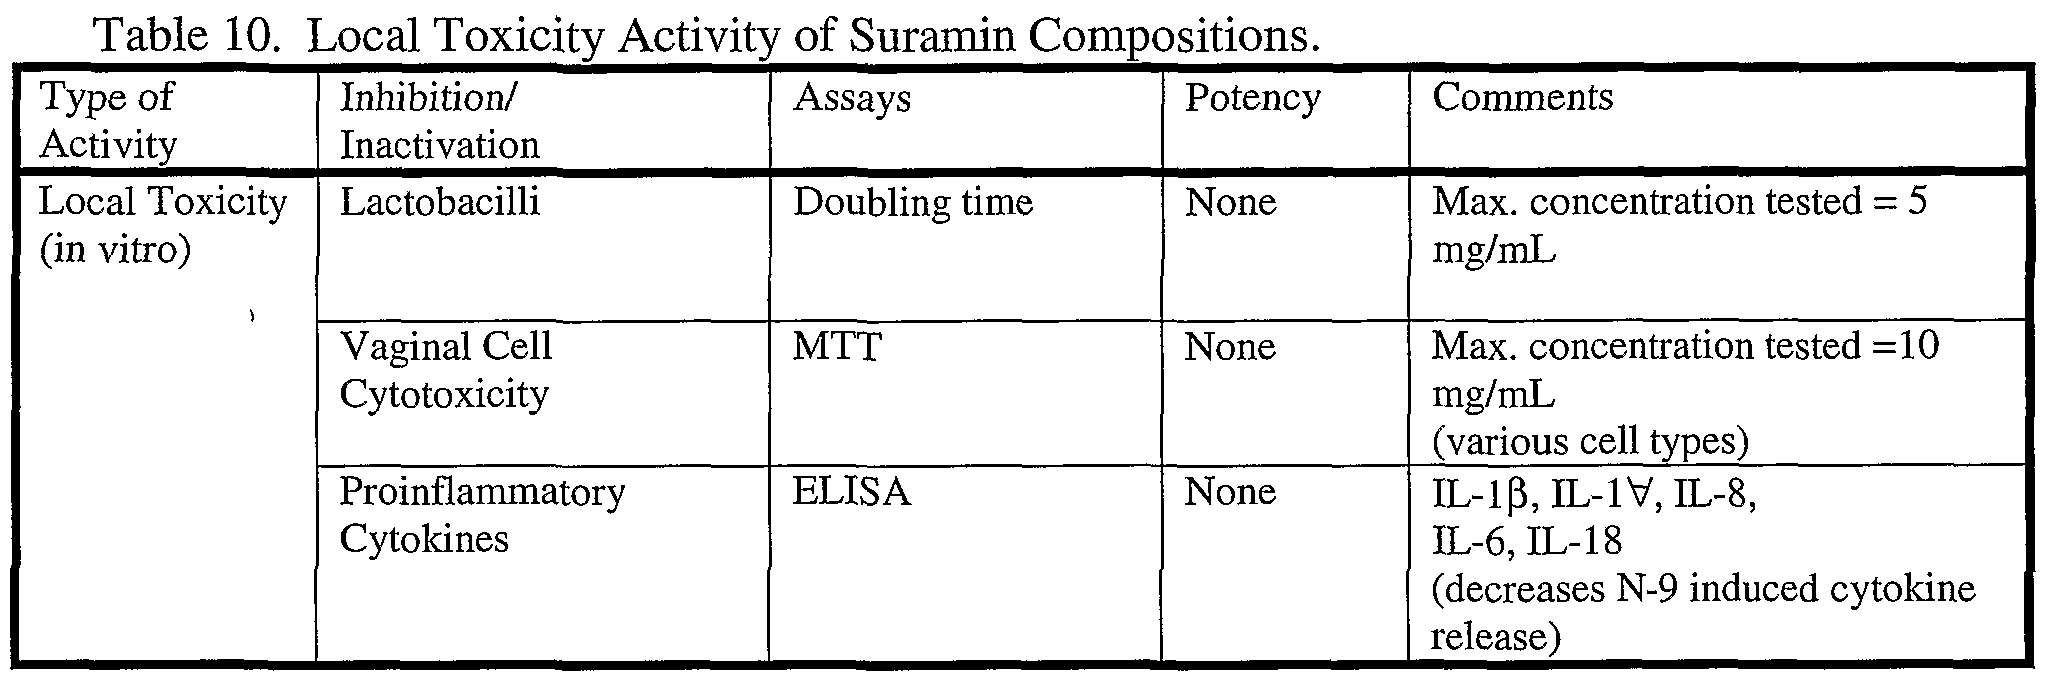 WO2003082193A2 - Suramin and derivatives thereof as topical